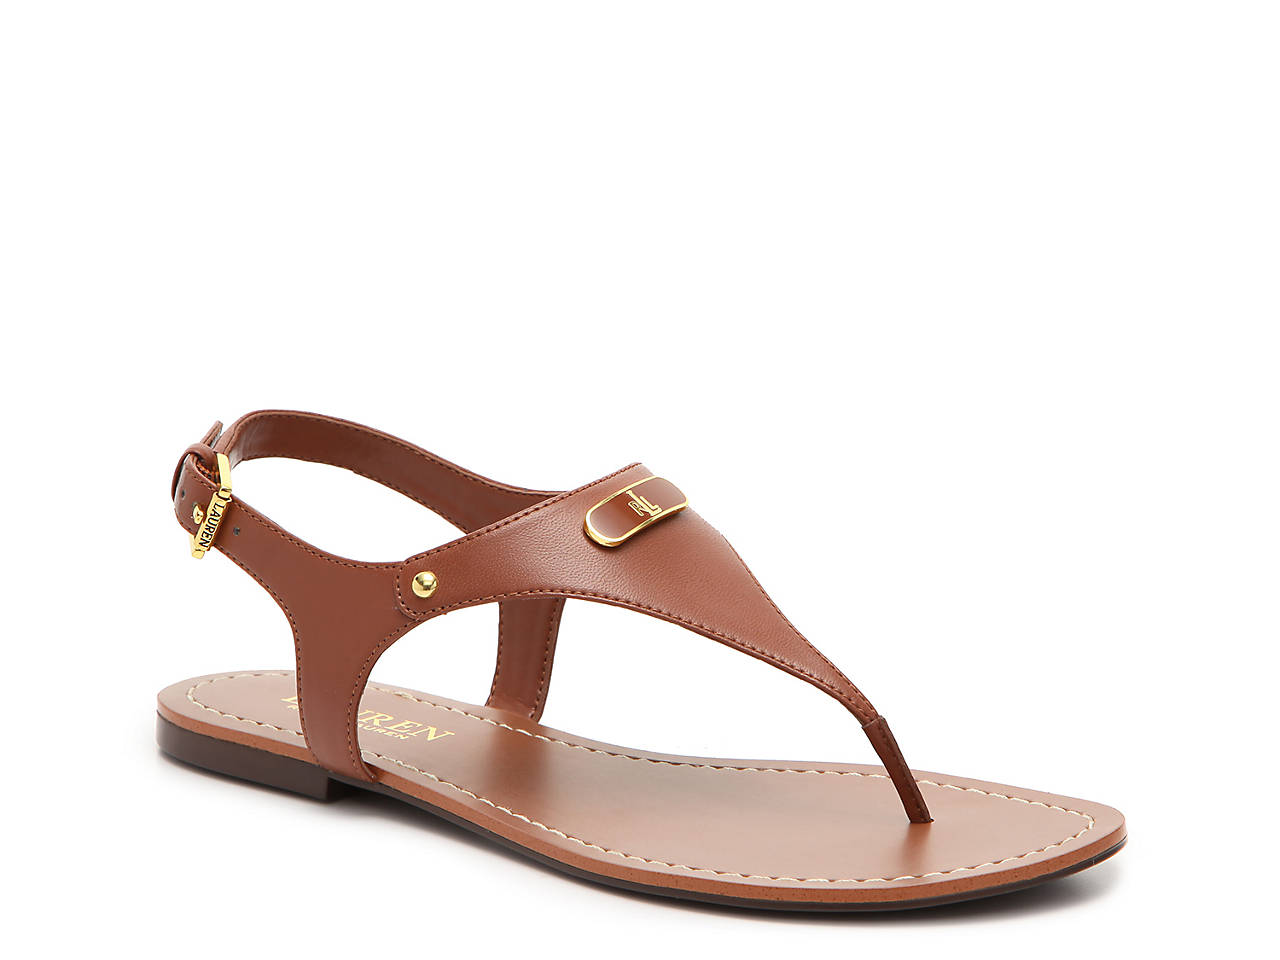 Buy Cheap Footlocker Finishline Sale Popular Lauren Ralph Lauren Patent Leather Thong Sandals Pw1xQJatwS